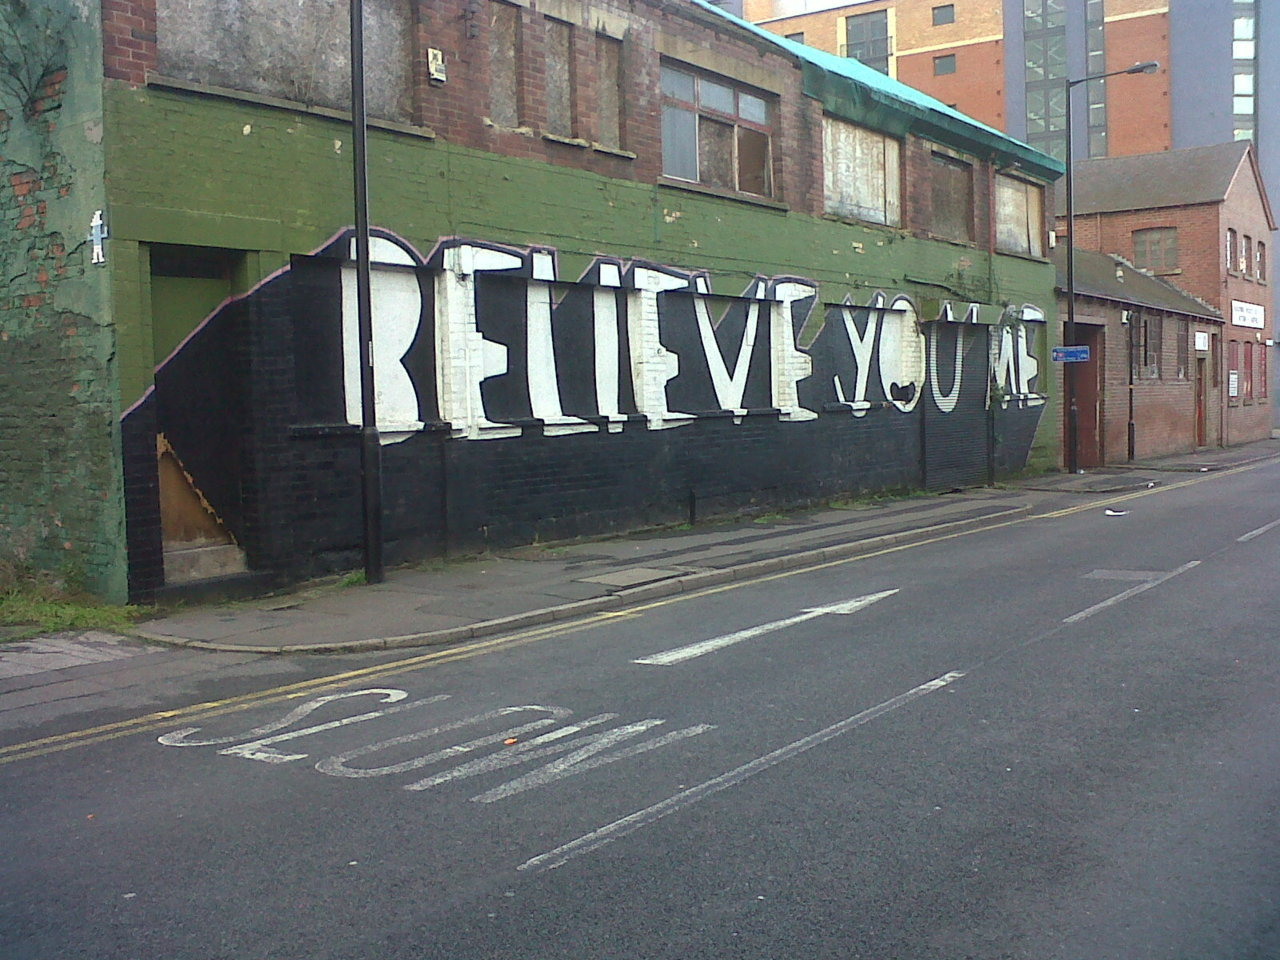 More Sheffield street art